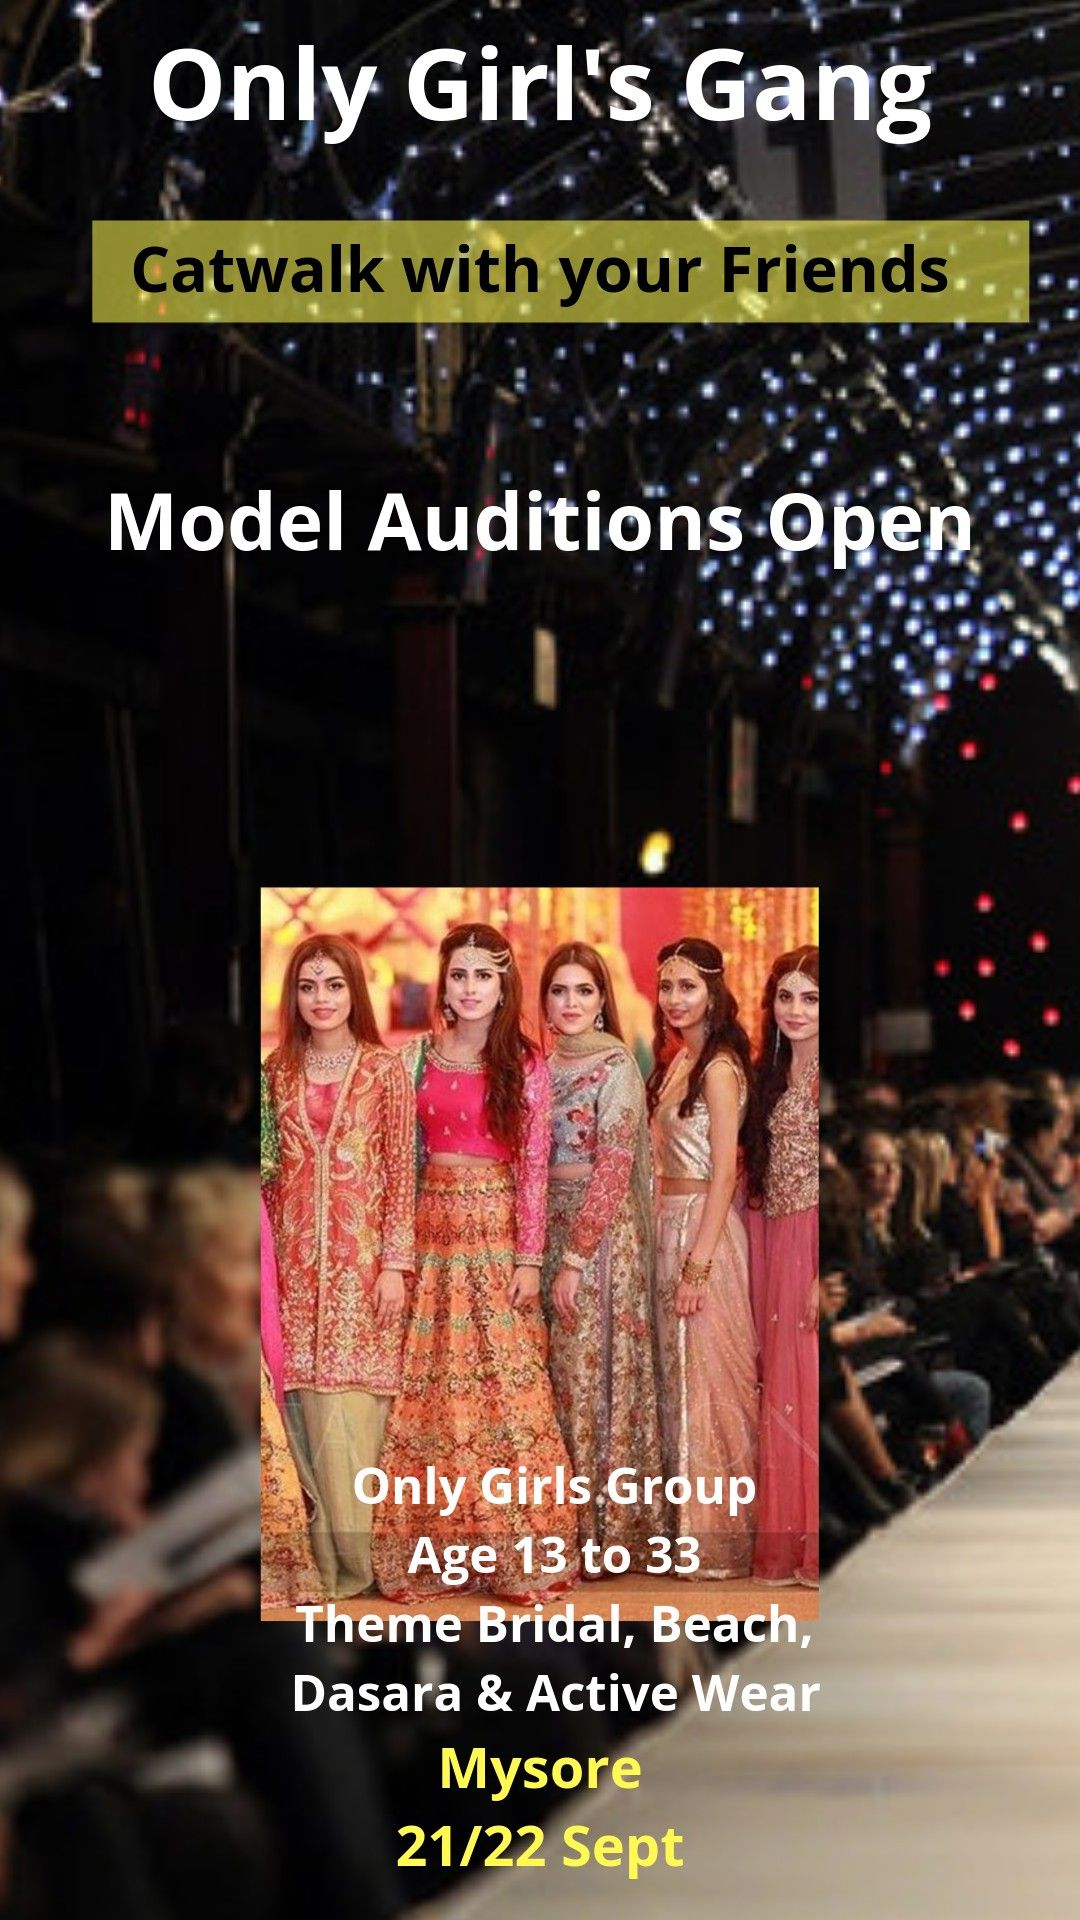 Sept 21 22 At Mysore Institute Of Fashion Technology Auditions Are Open For Mysore Fashion Voyage Season 3 Call Or Technology Fashion Girl Group Girl Gang